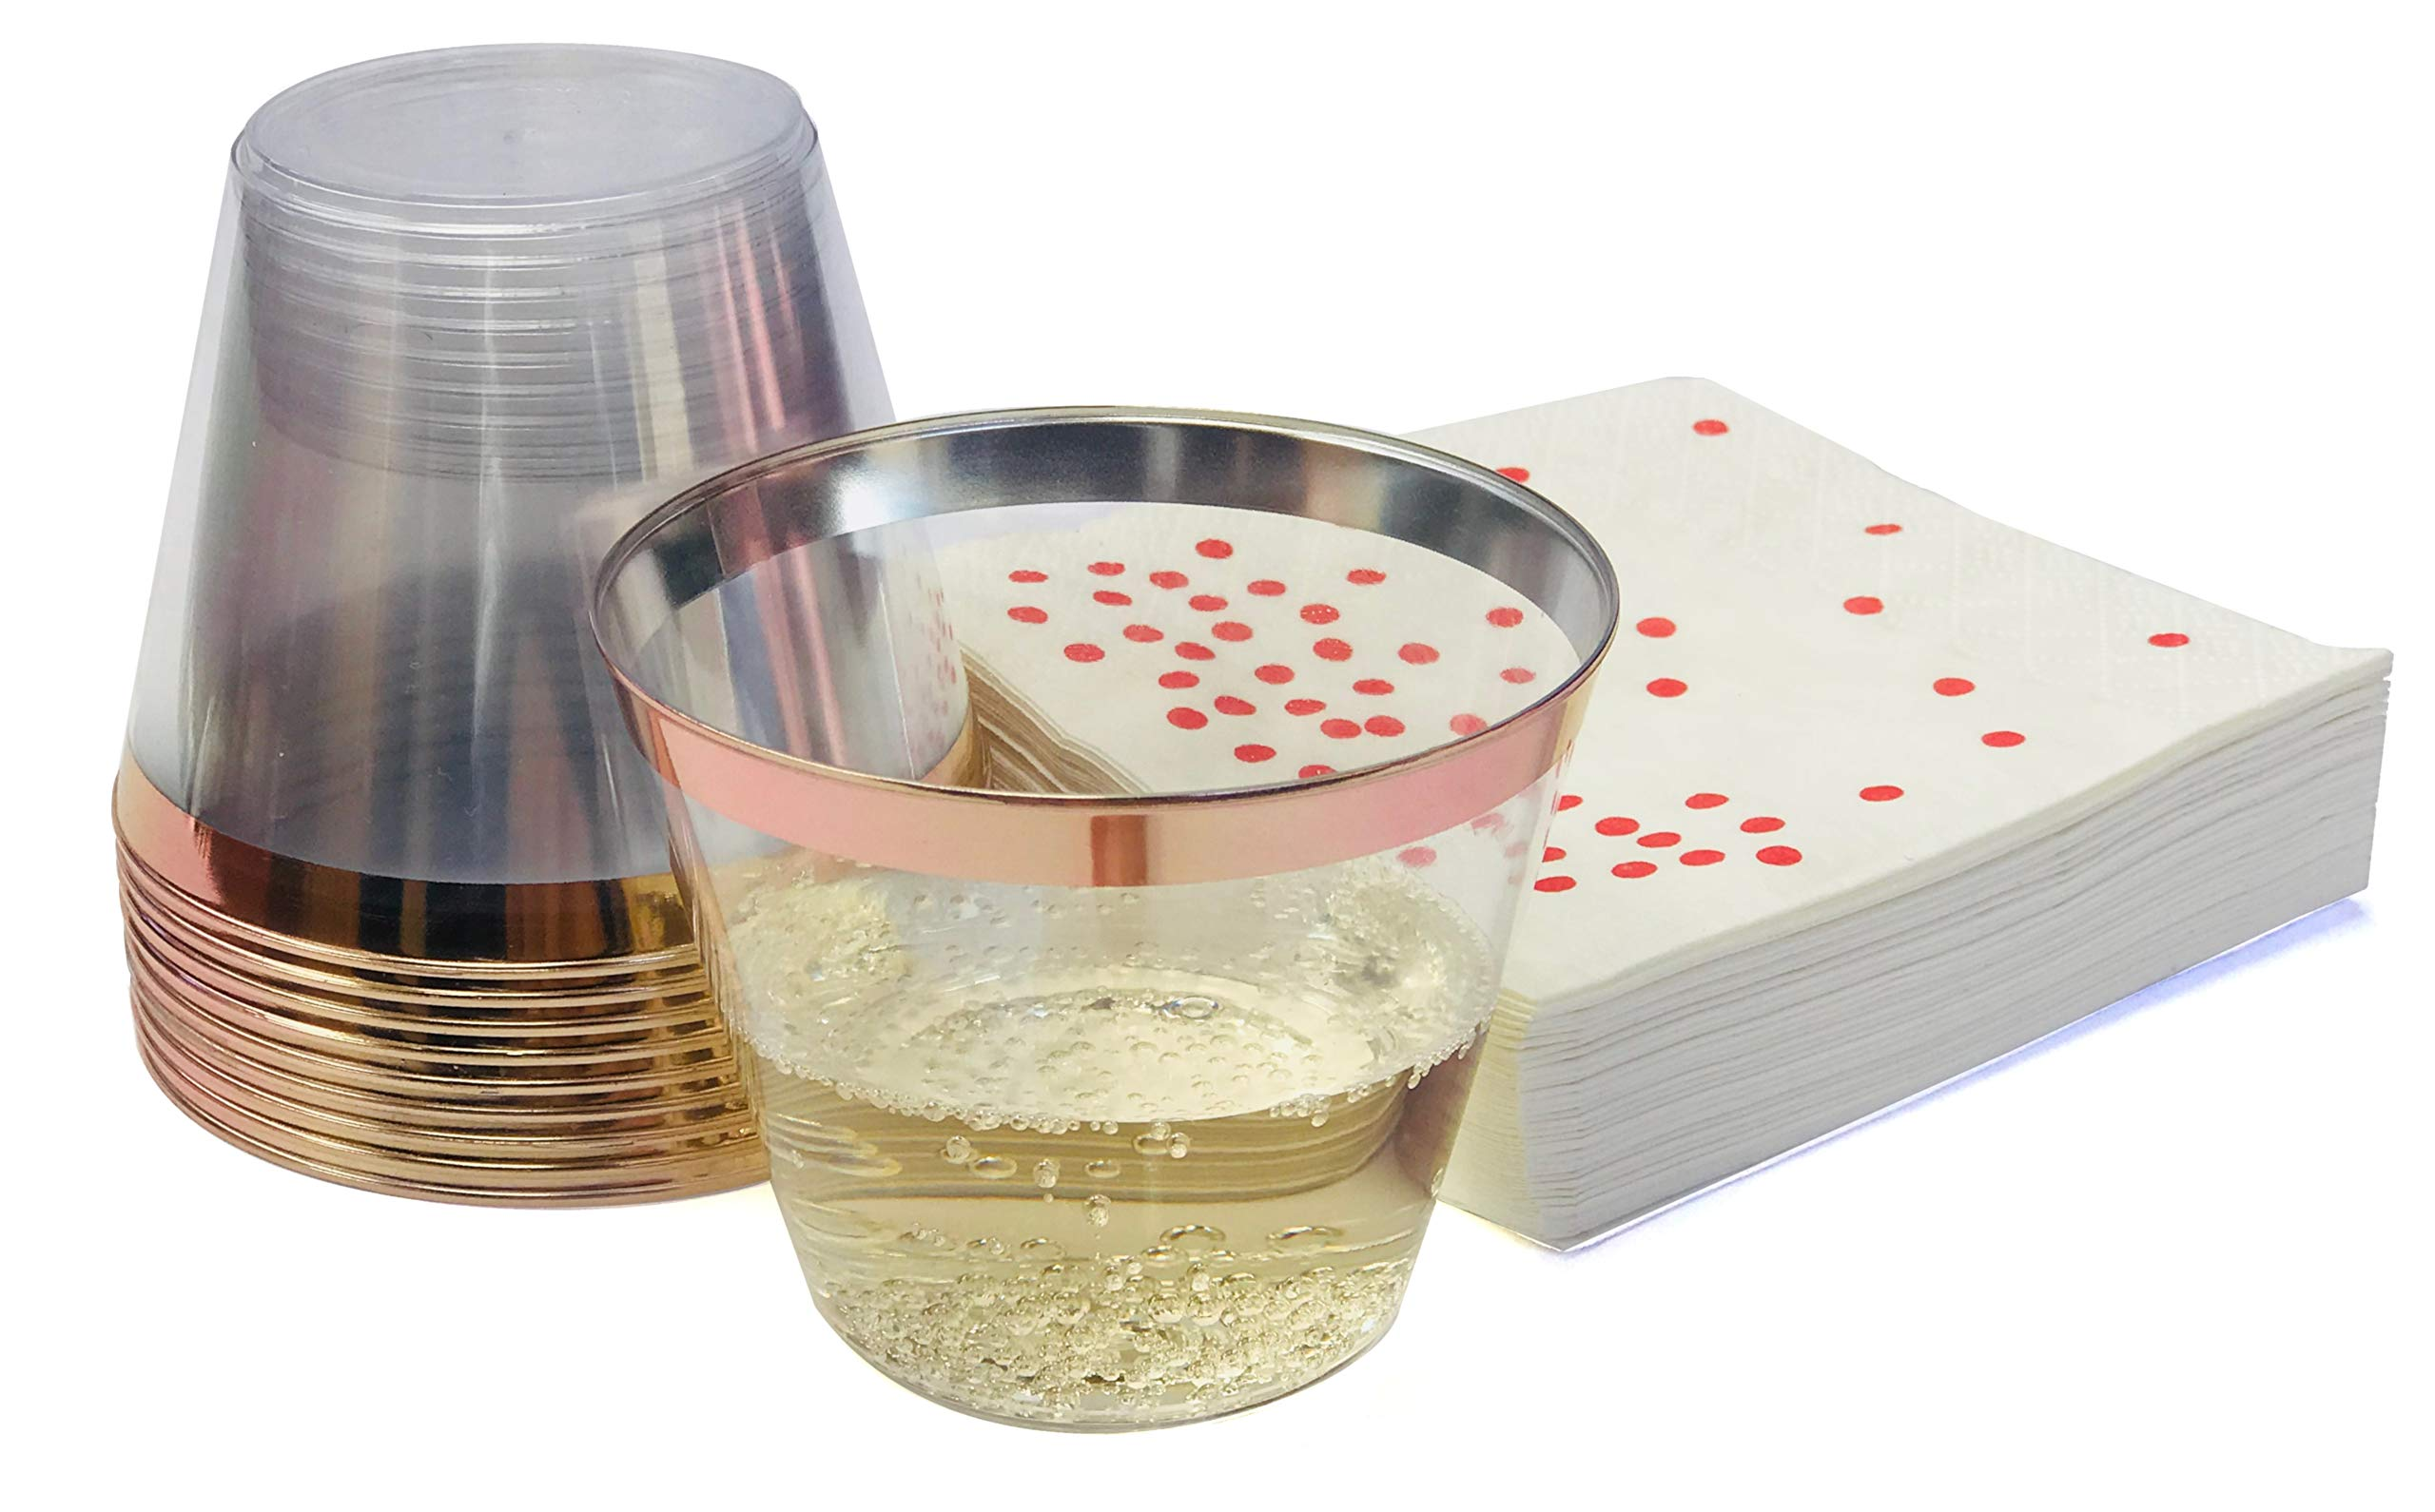 Premium 100 Rose Gold Rimmed 9 oz Clear Plastic Cups + FREE 100 Napkins ~ Perfect for Wedding/Engagement/ Cocktails/Dinner/Wine/Birthday Parties ~ GREAT VALUE PACK 100 ROSE GOLD RIM CUPS + 100 NAPKINS